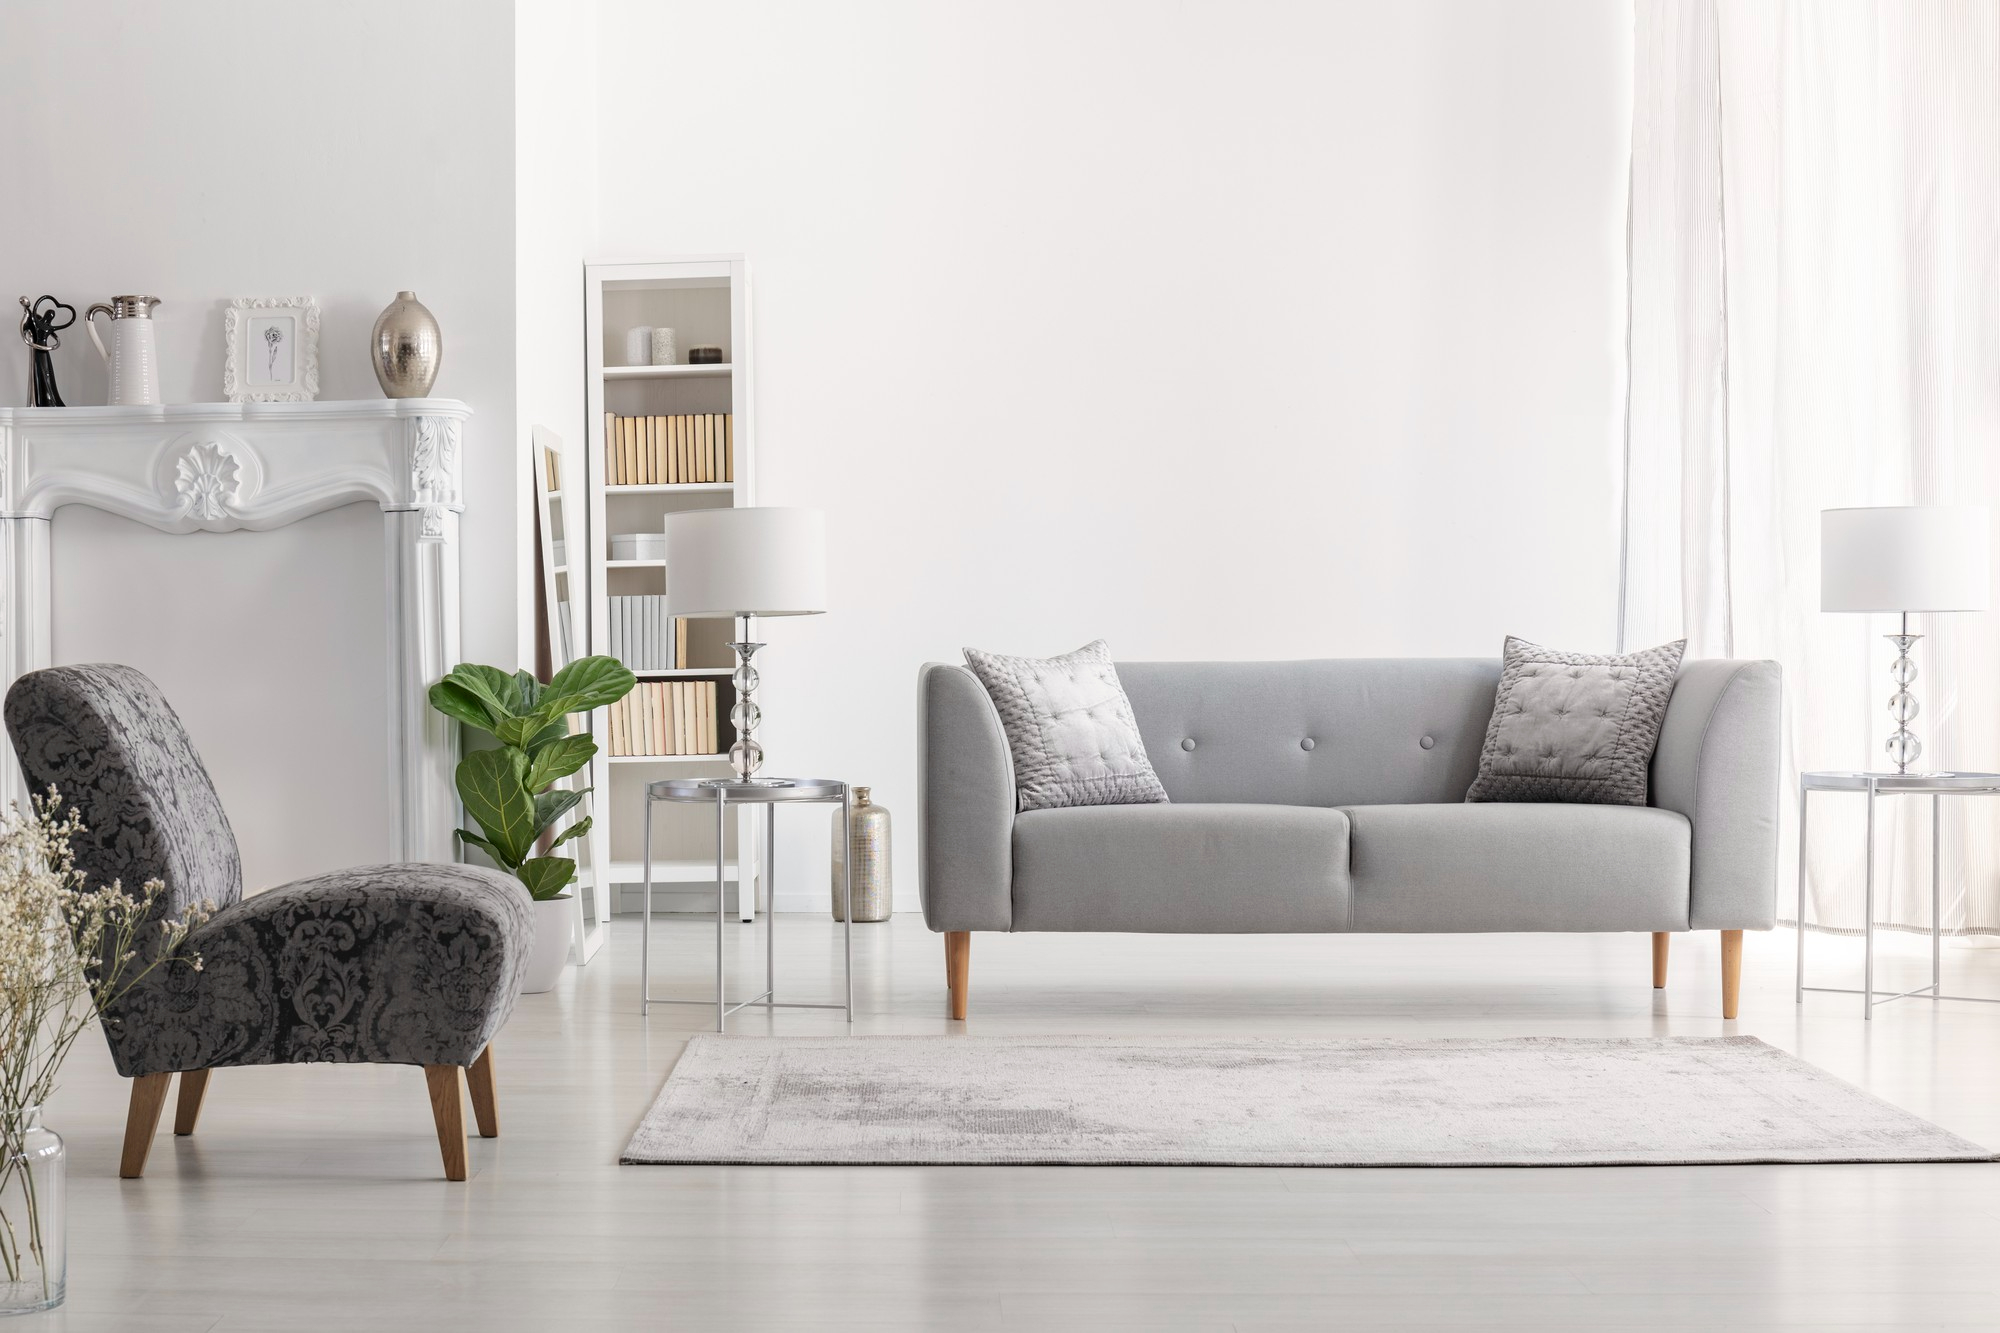 carpet-near-armchair-grey-settee-white-living-room-interior-with-lamp-table-real-photo